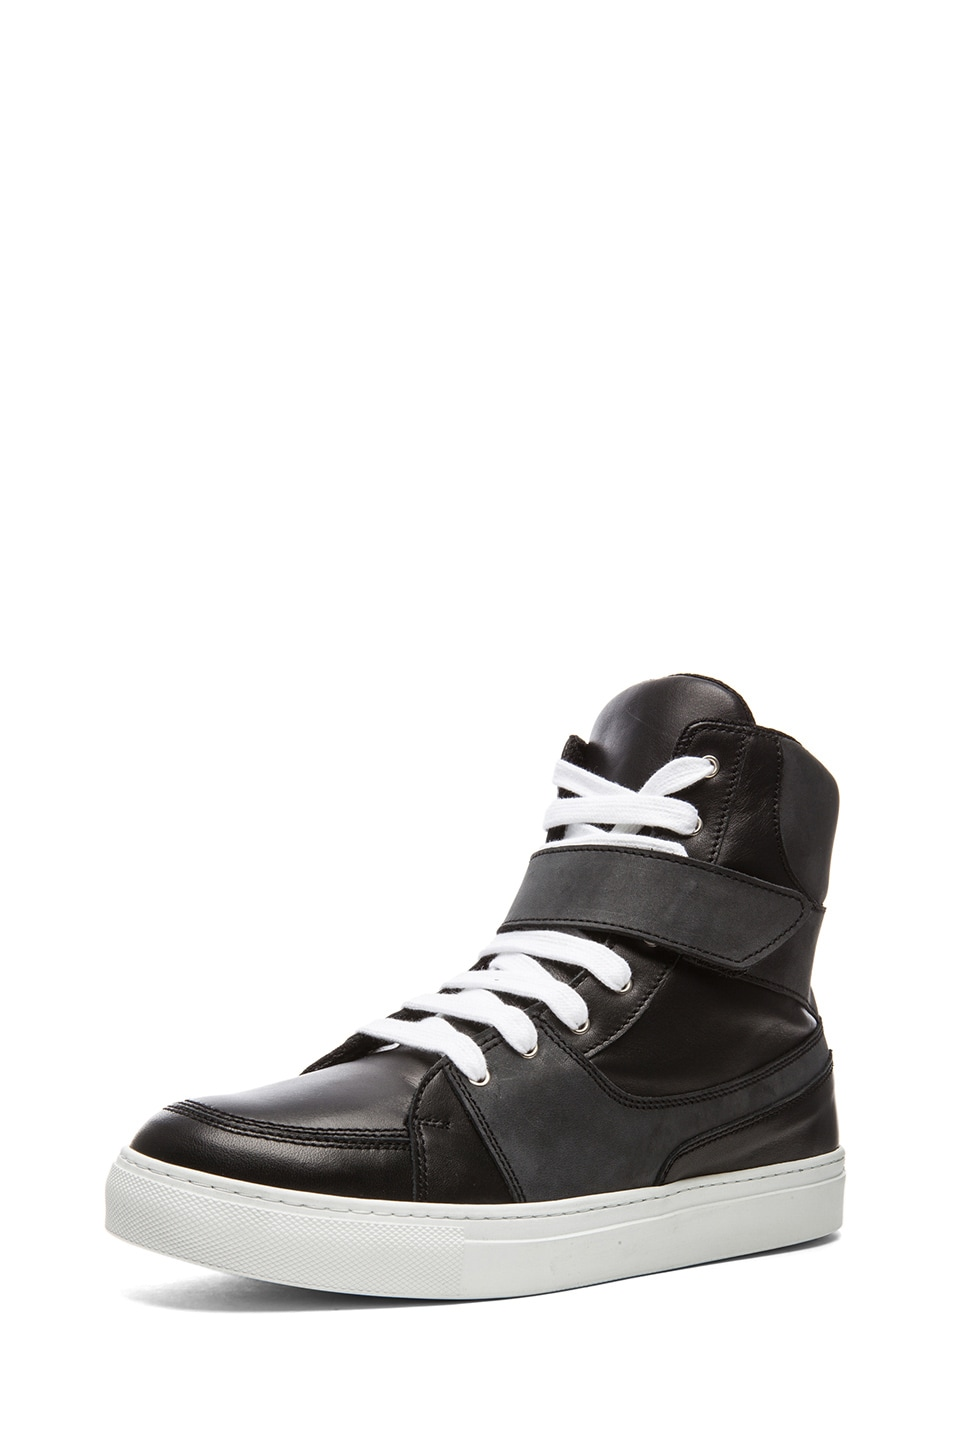 219c19d347 Image 2 of Kris Van Assche Calfskin Leather High Top Sneaker in Black